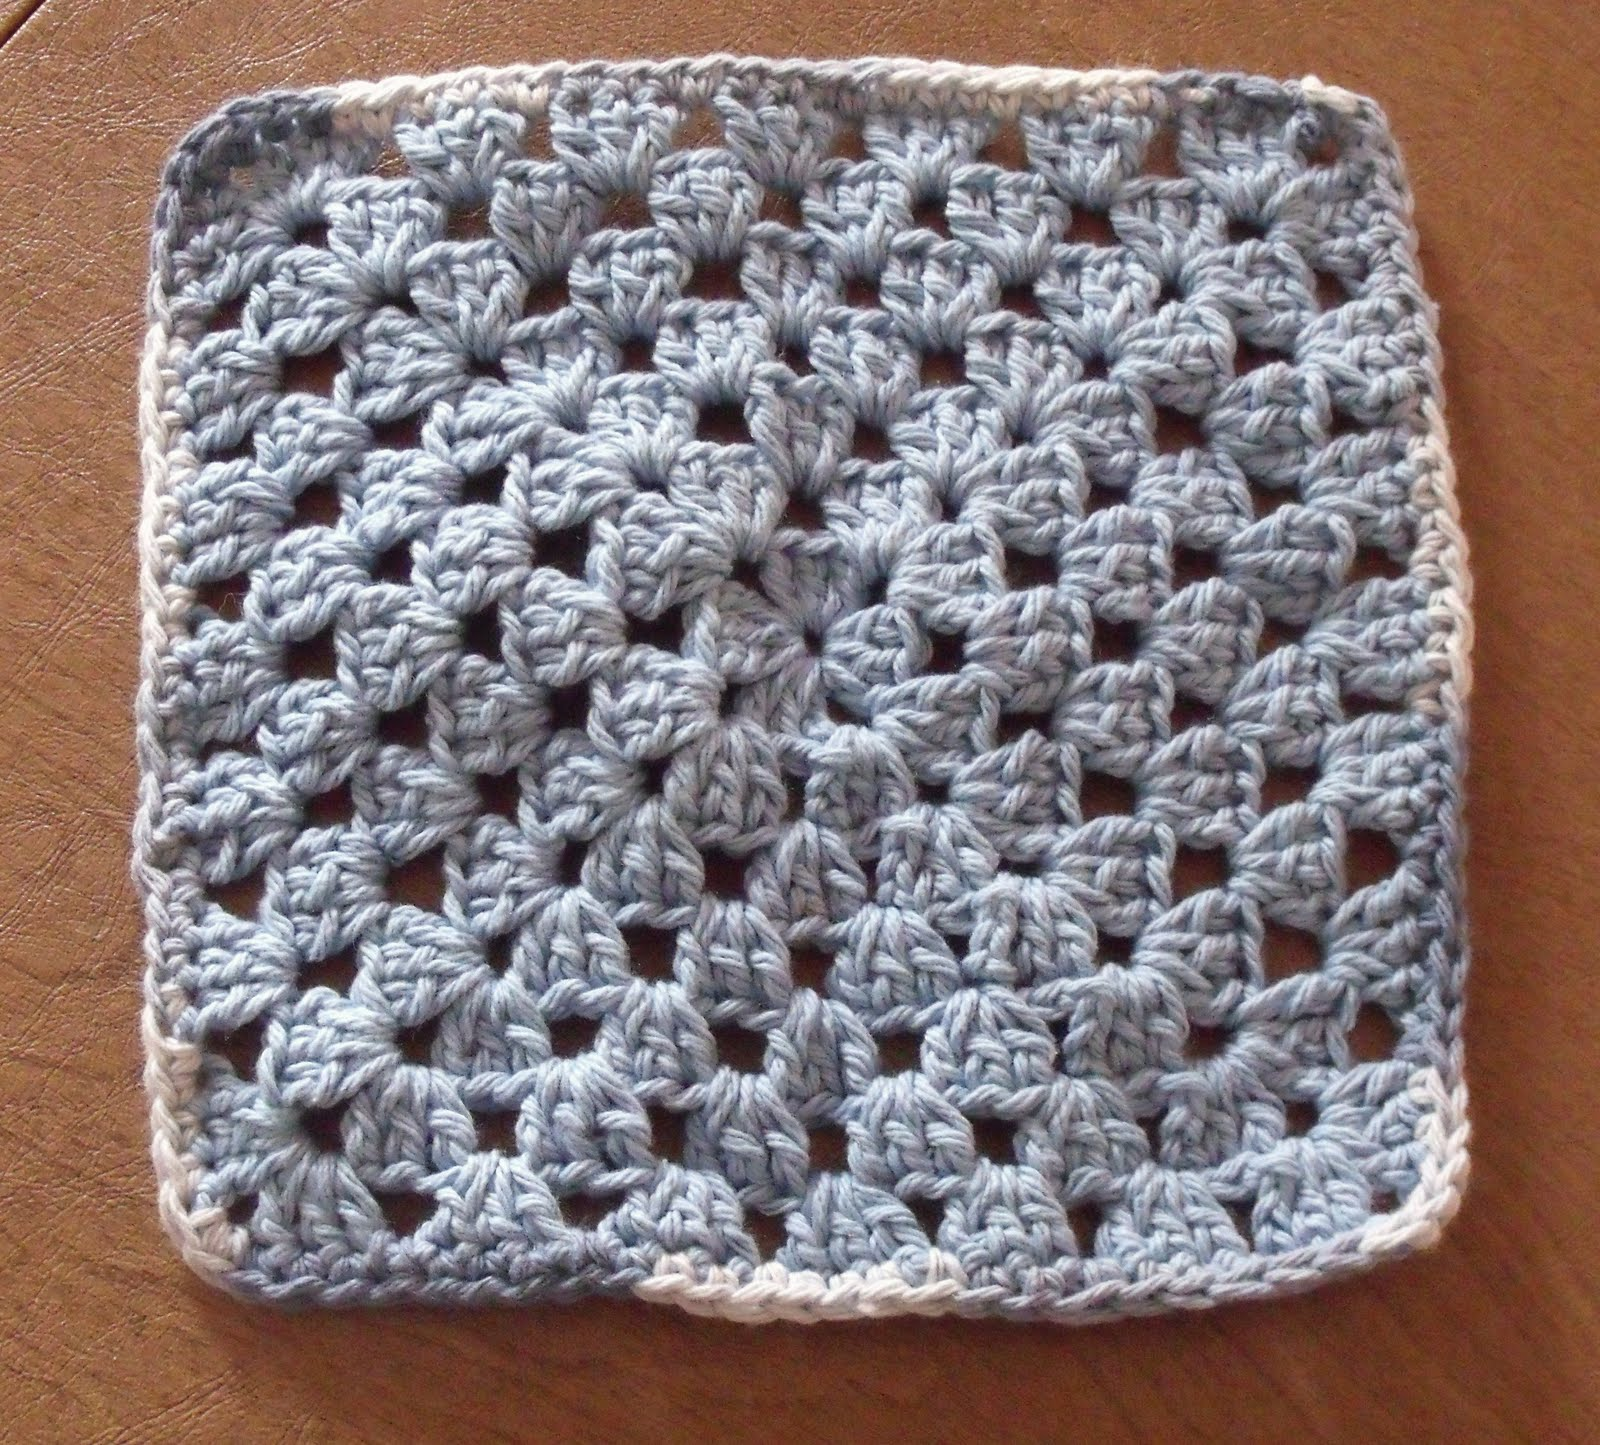 Baking, Crocheting and Sewing, Oh My!: Crochet Granny ...